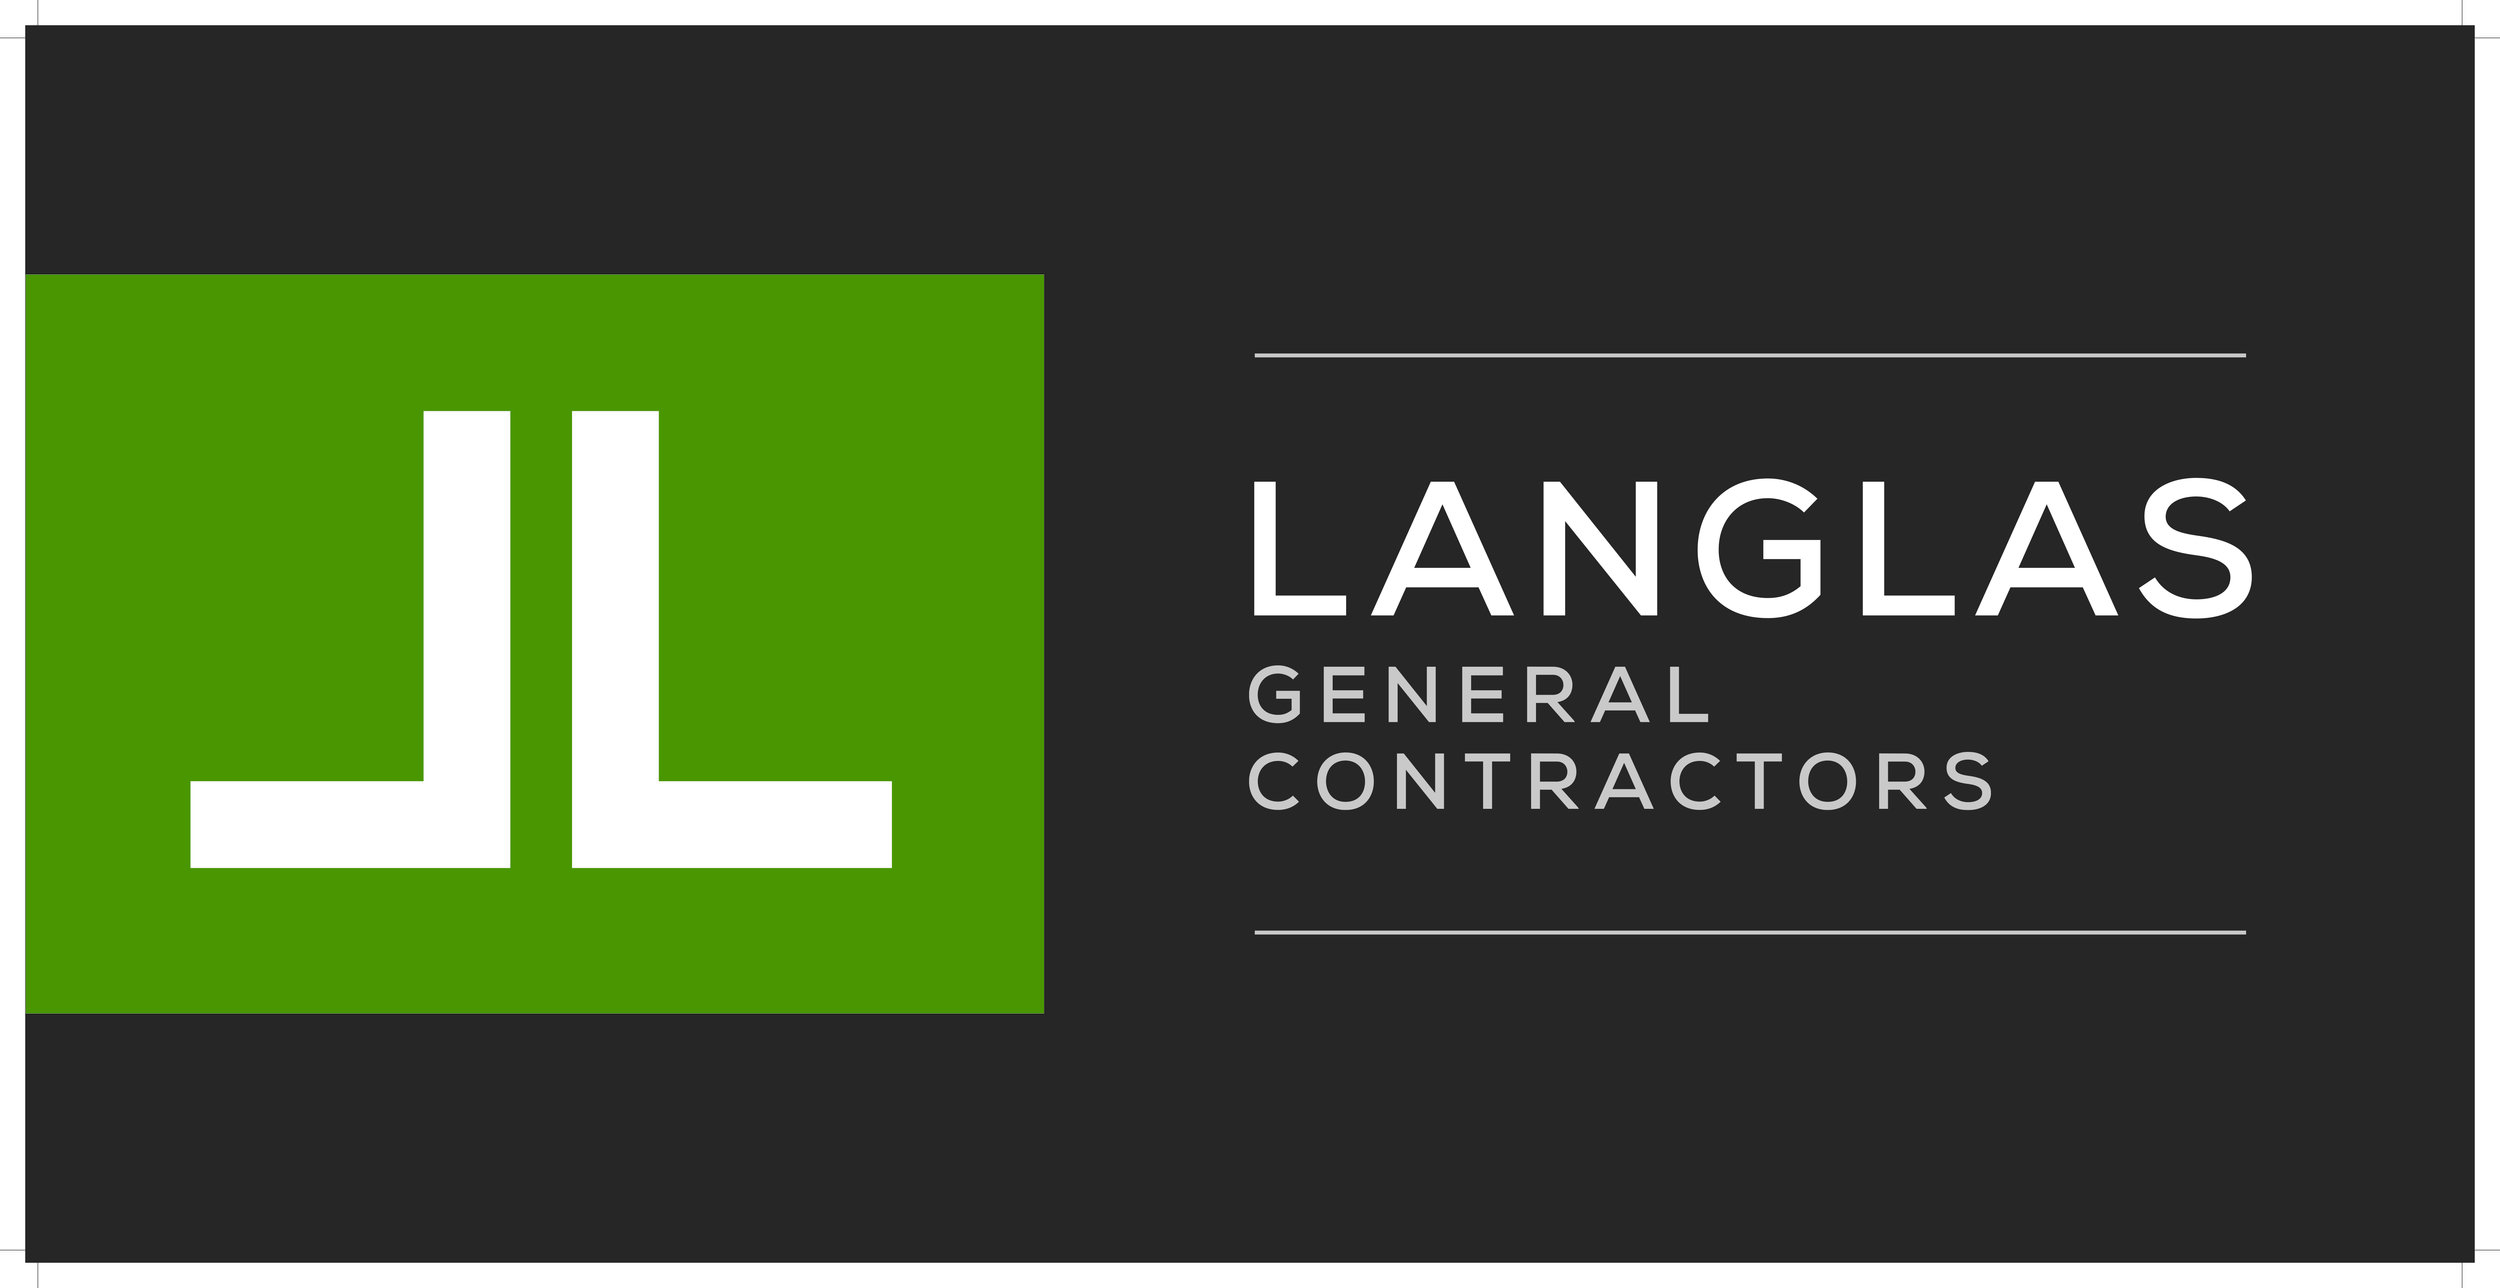 Langlas_SiteSign_4ftx2ft.jpg